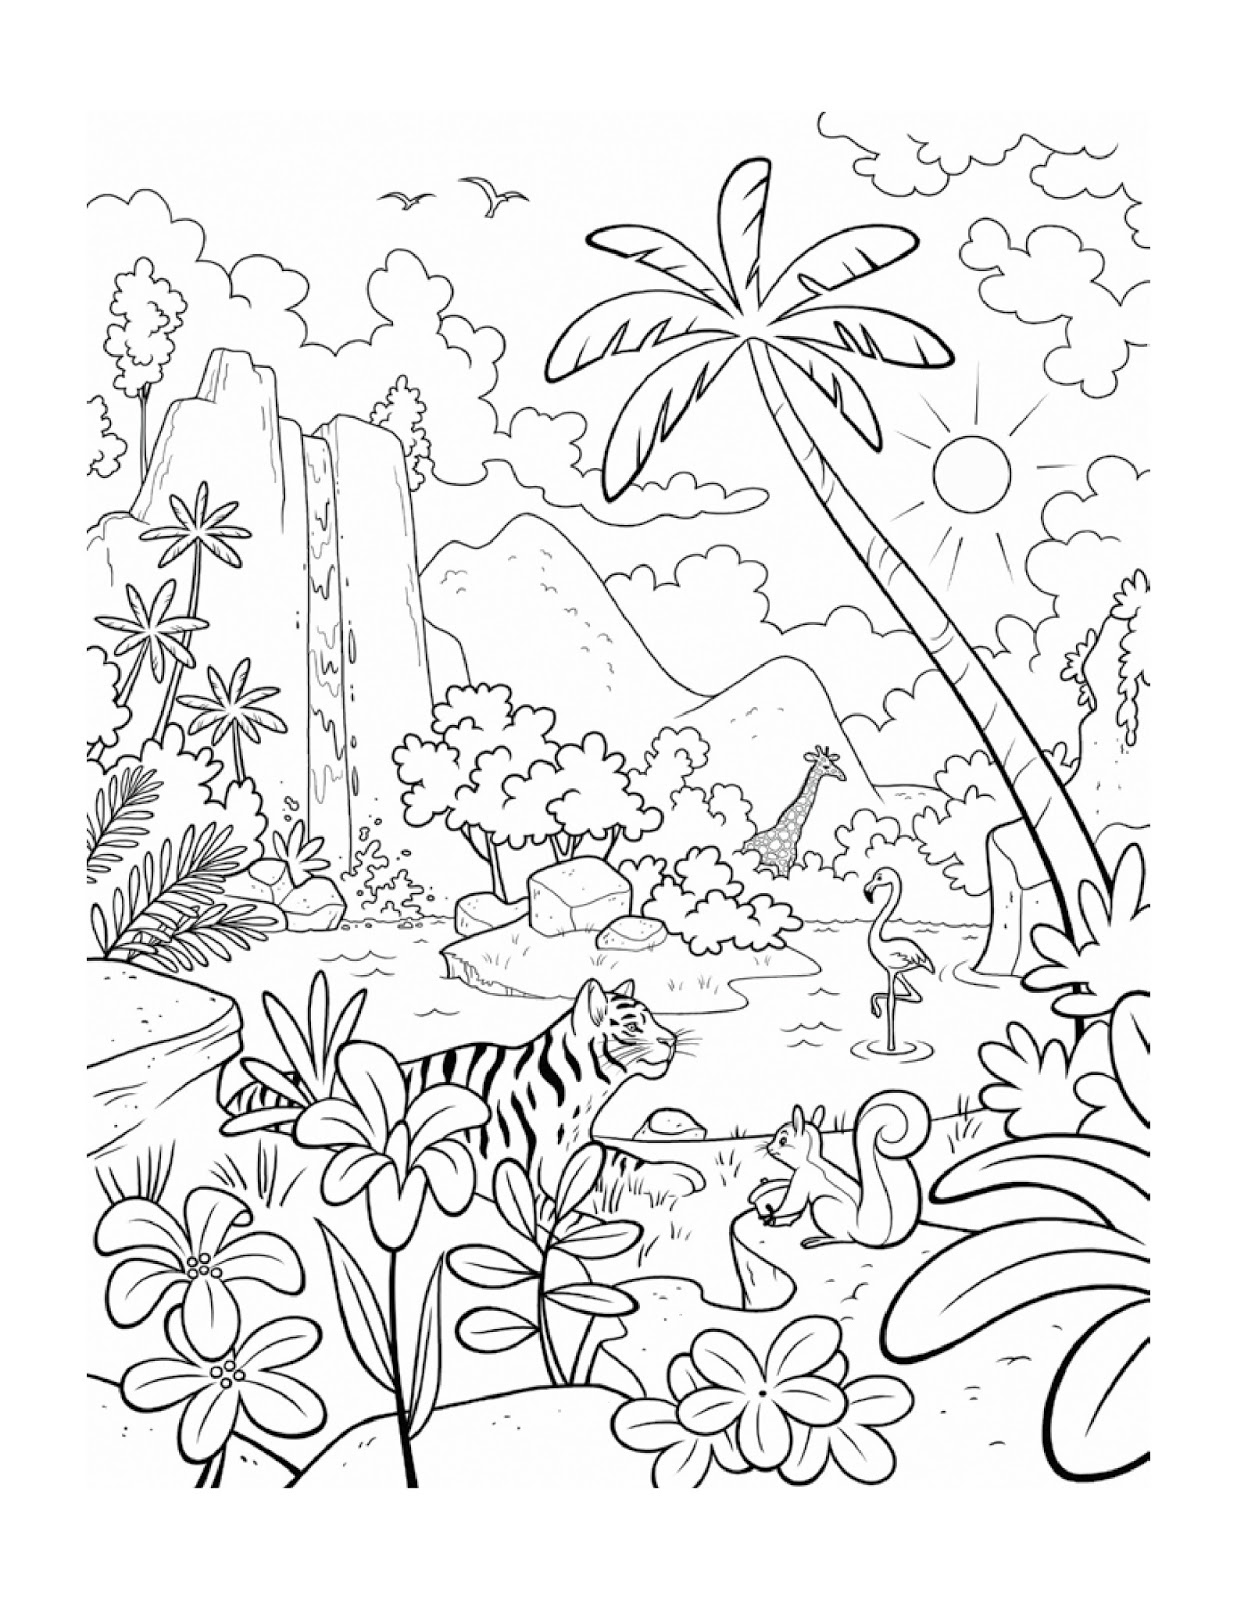 Coloring Page: Plants and Animals